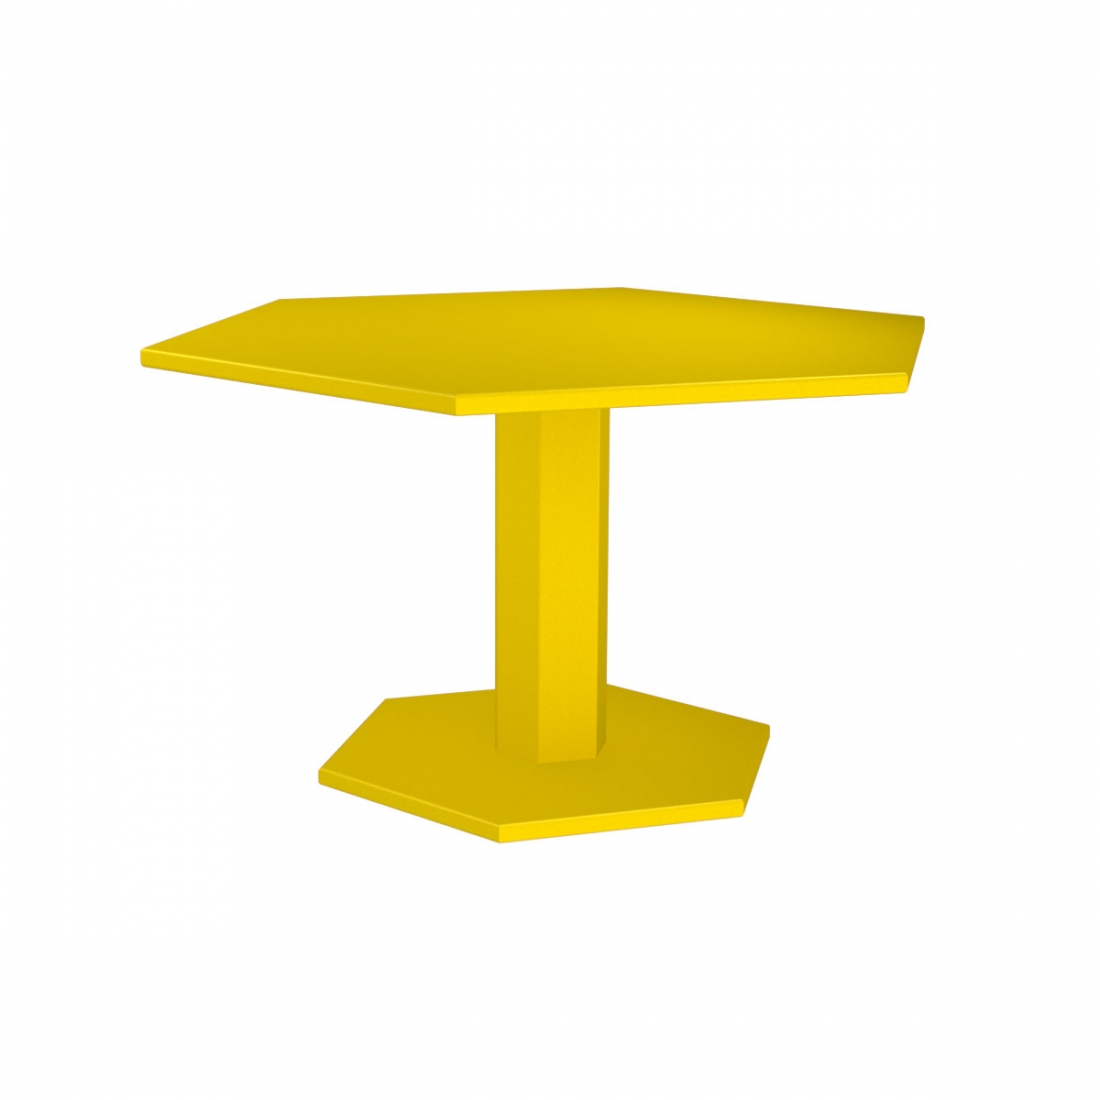 Table de repas hexagonale design indus zhed for Table de repas design